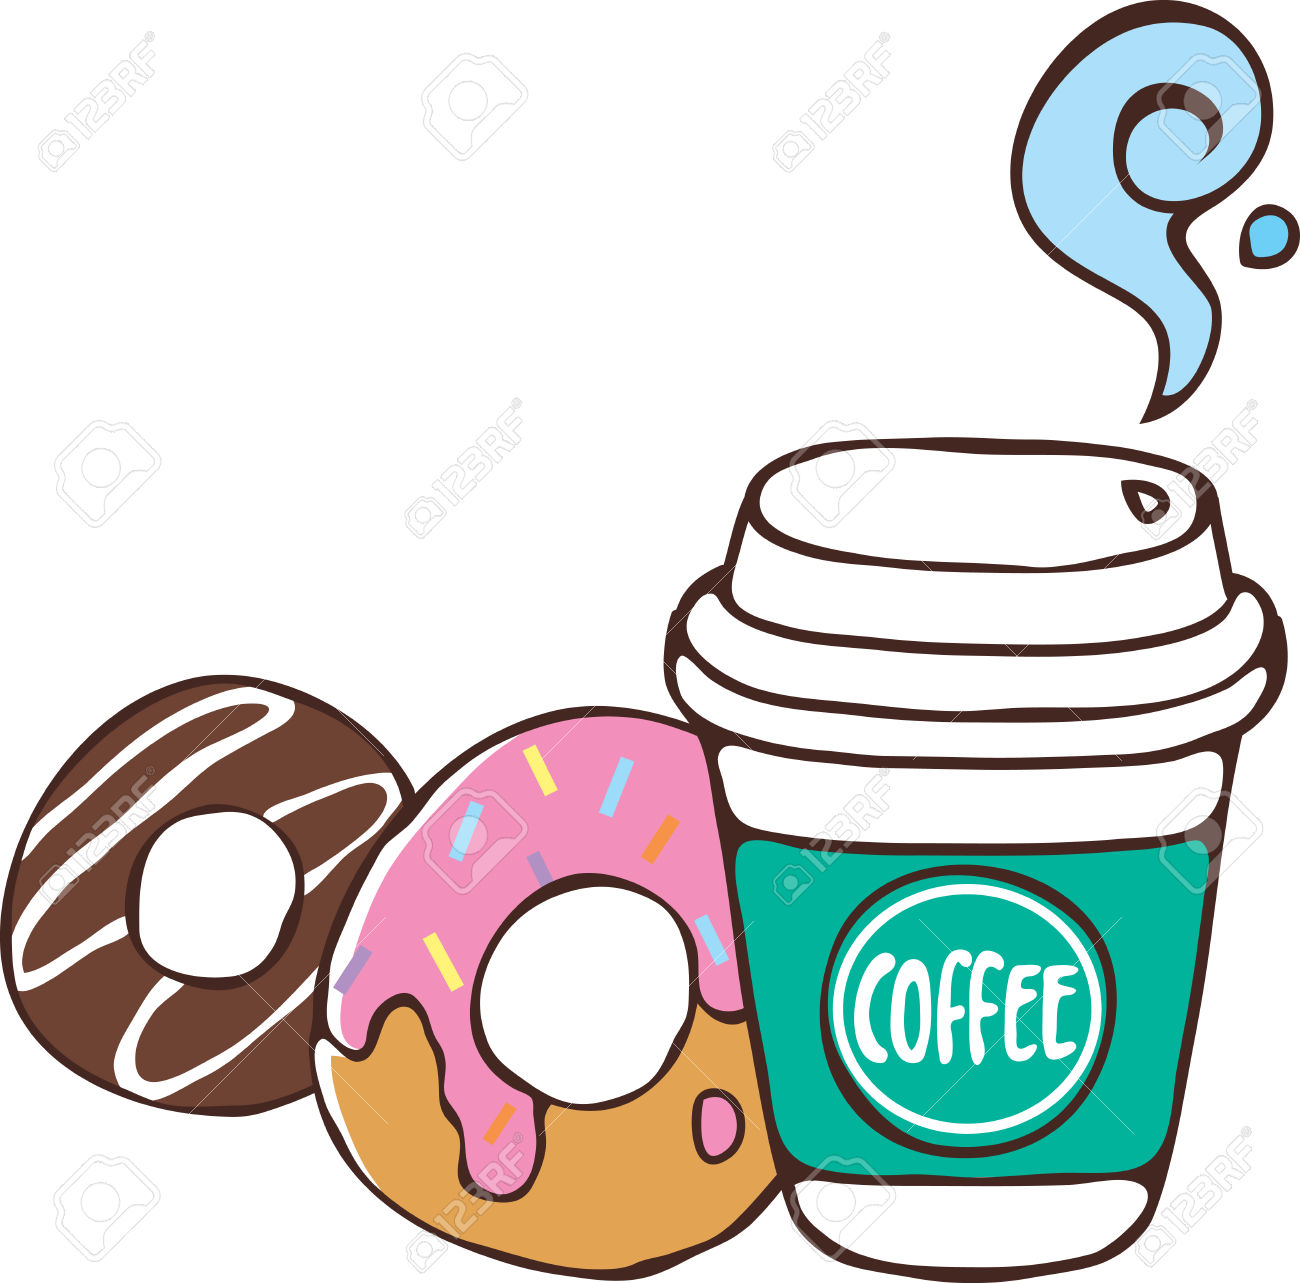 and clipartlook. Donuts clipart coffee